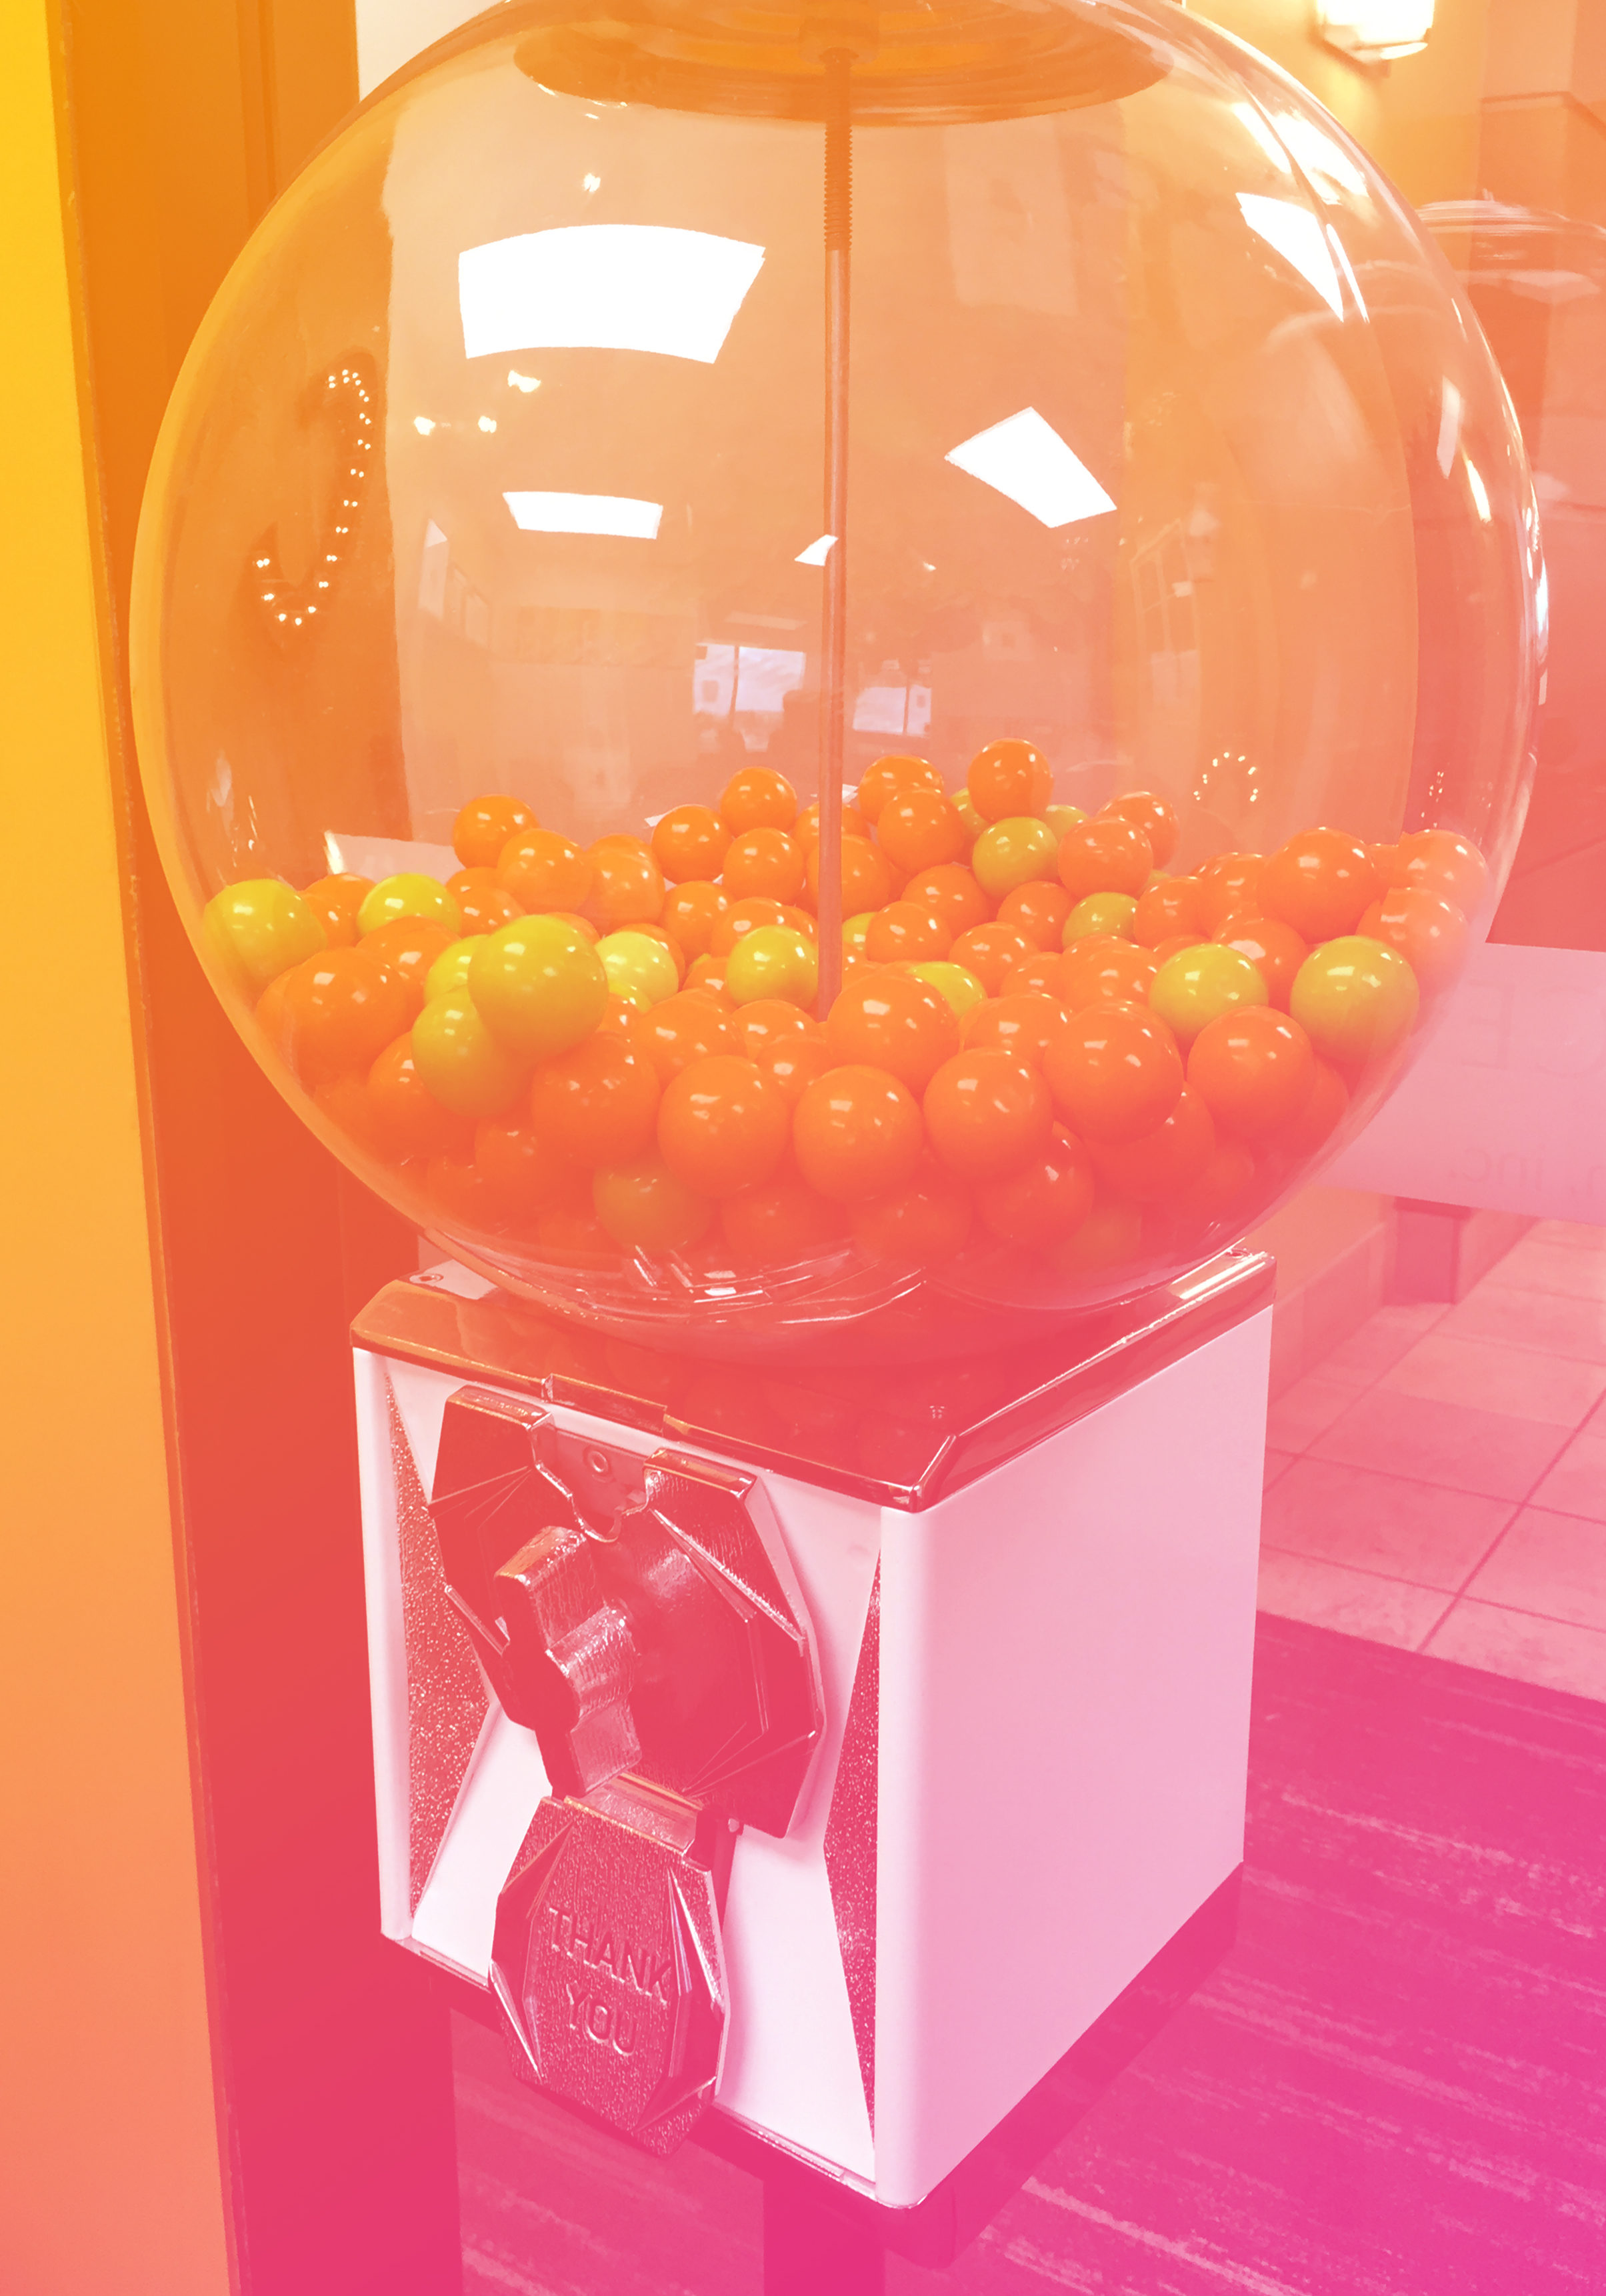 Coalesce gum ball machine